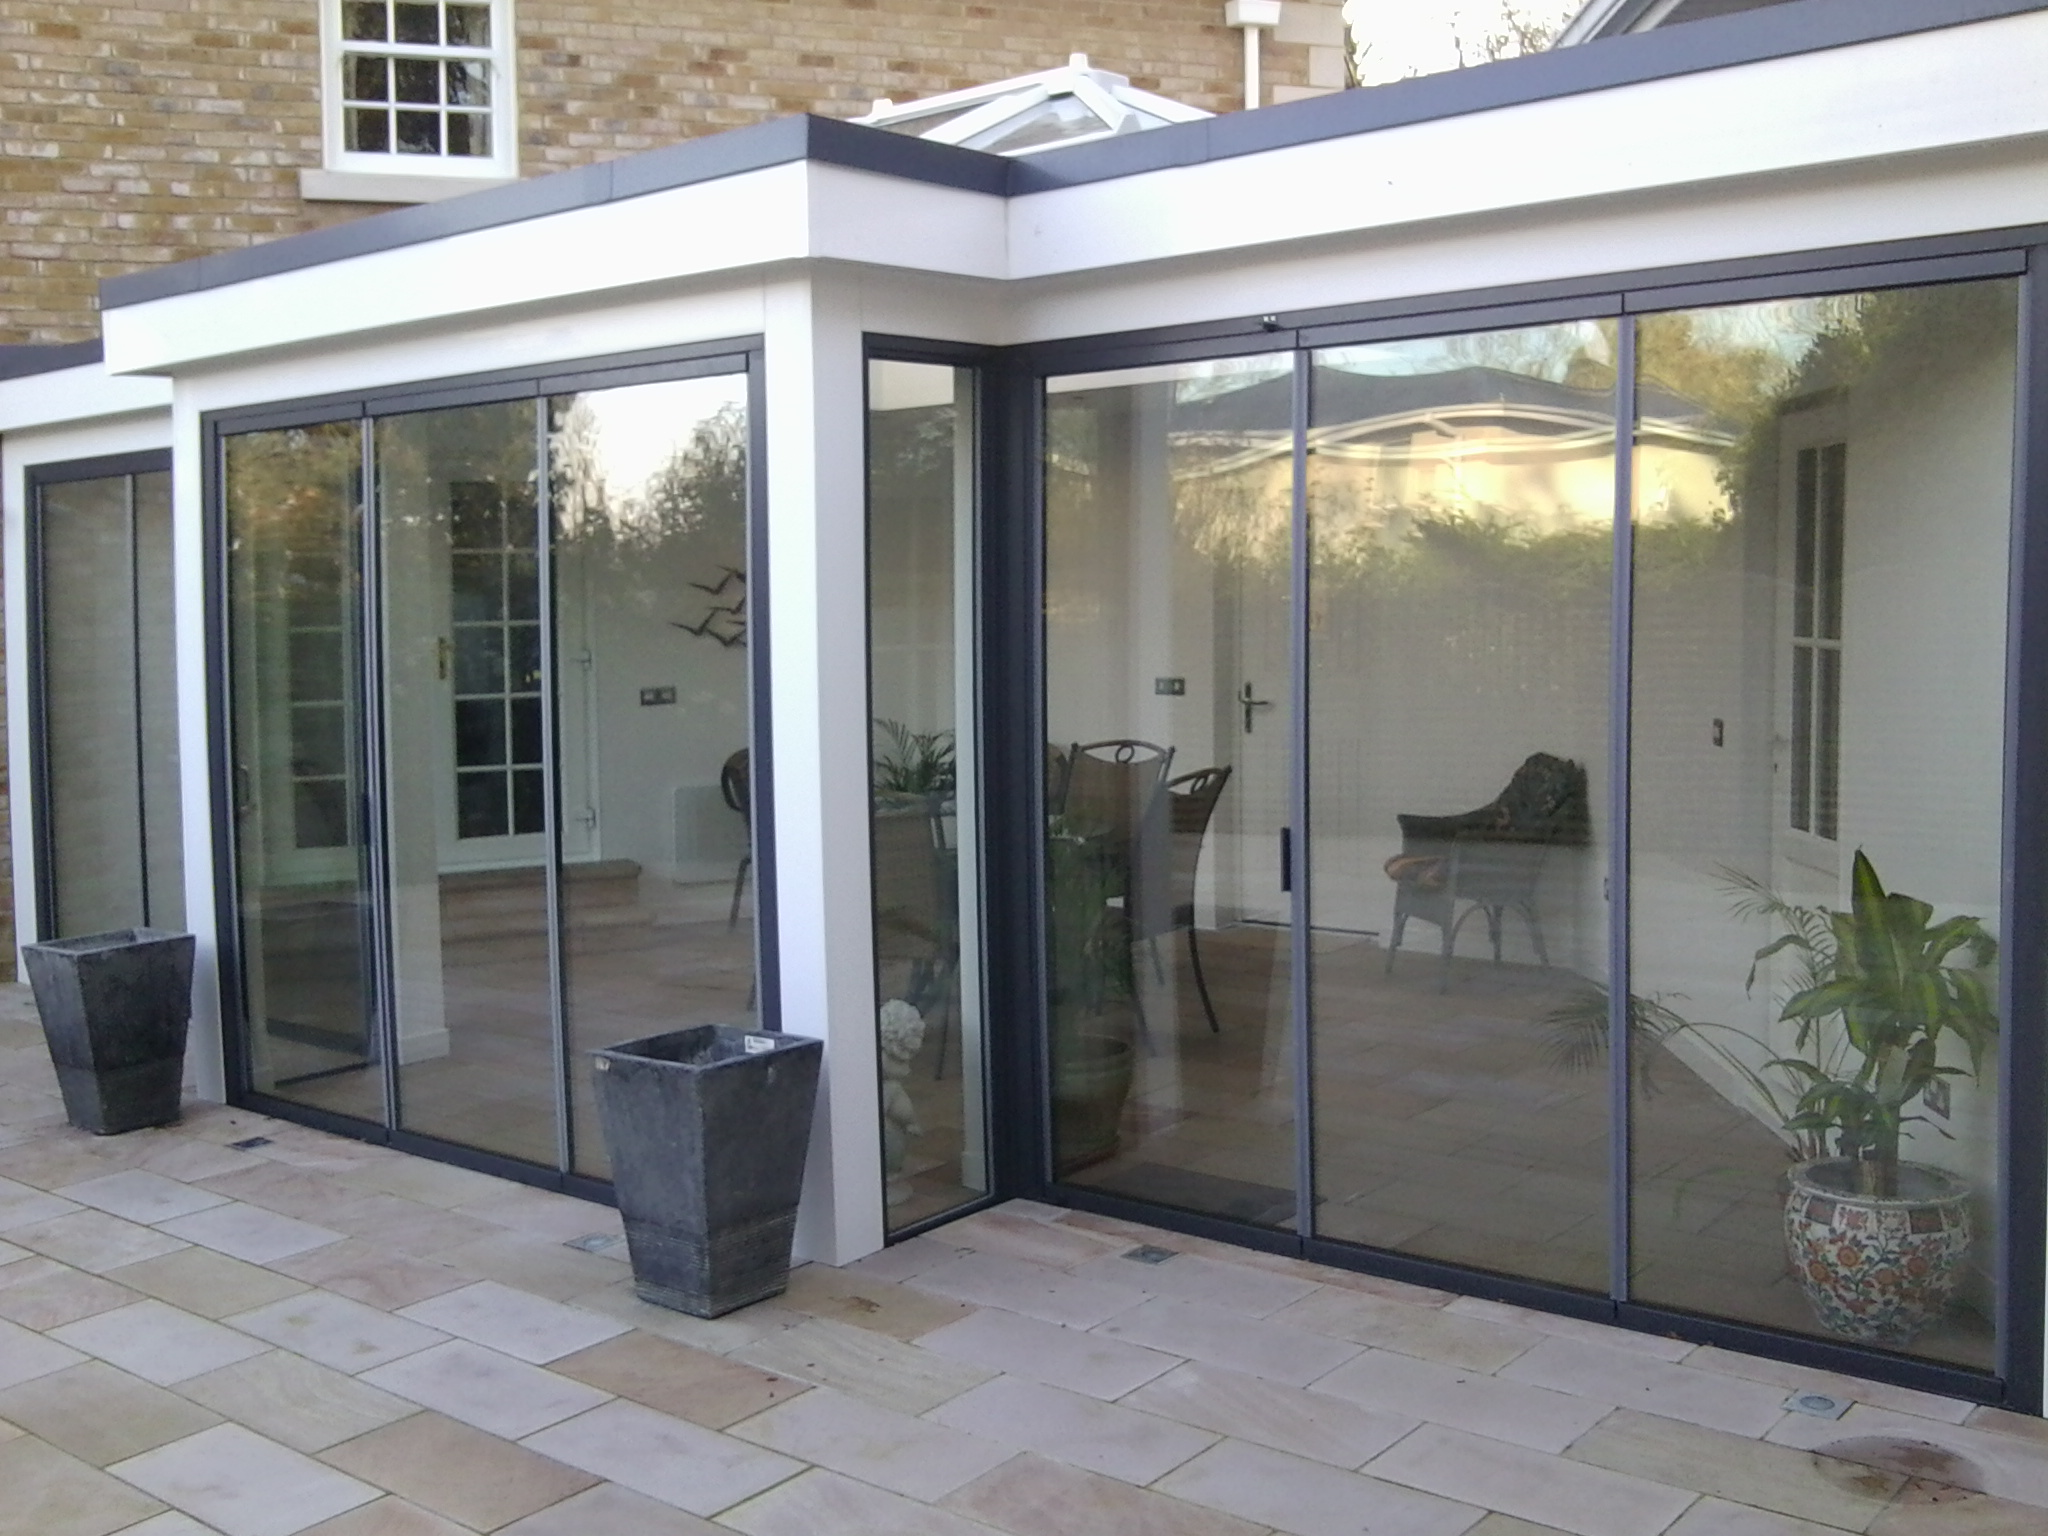 Ultraslim Slide And Turn Pivot Swing Glass Doors From